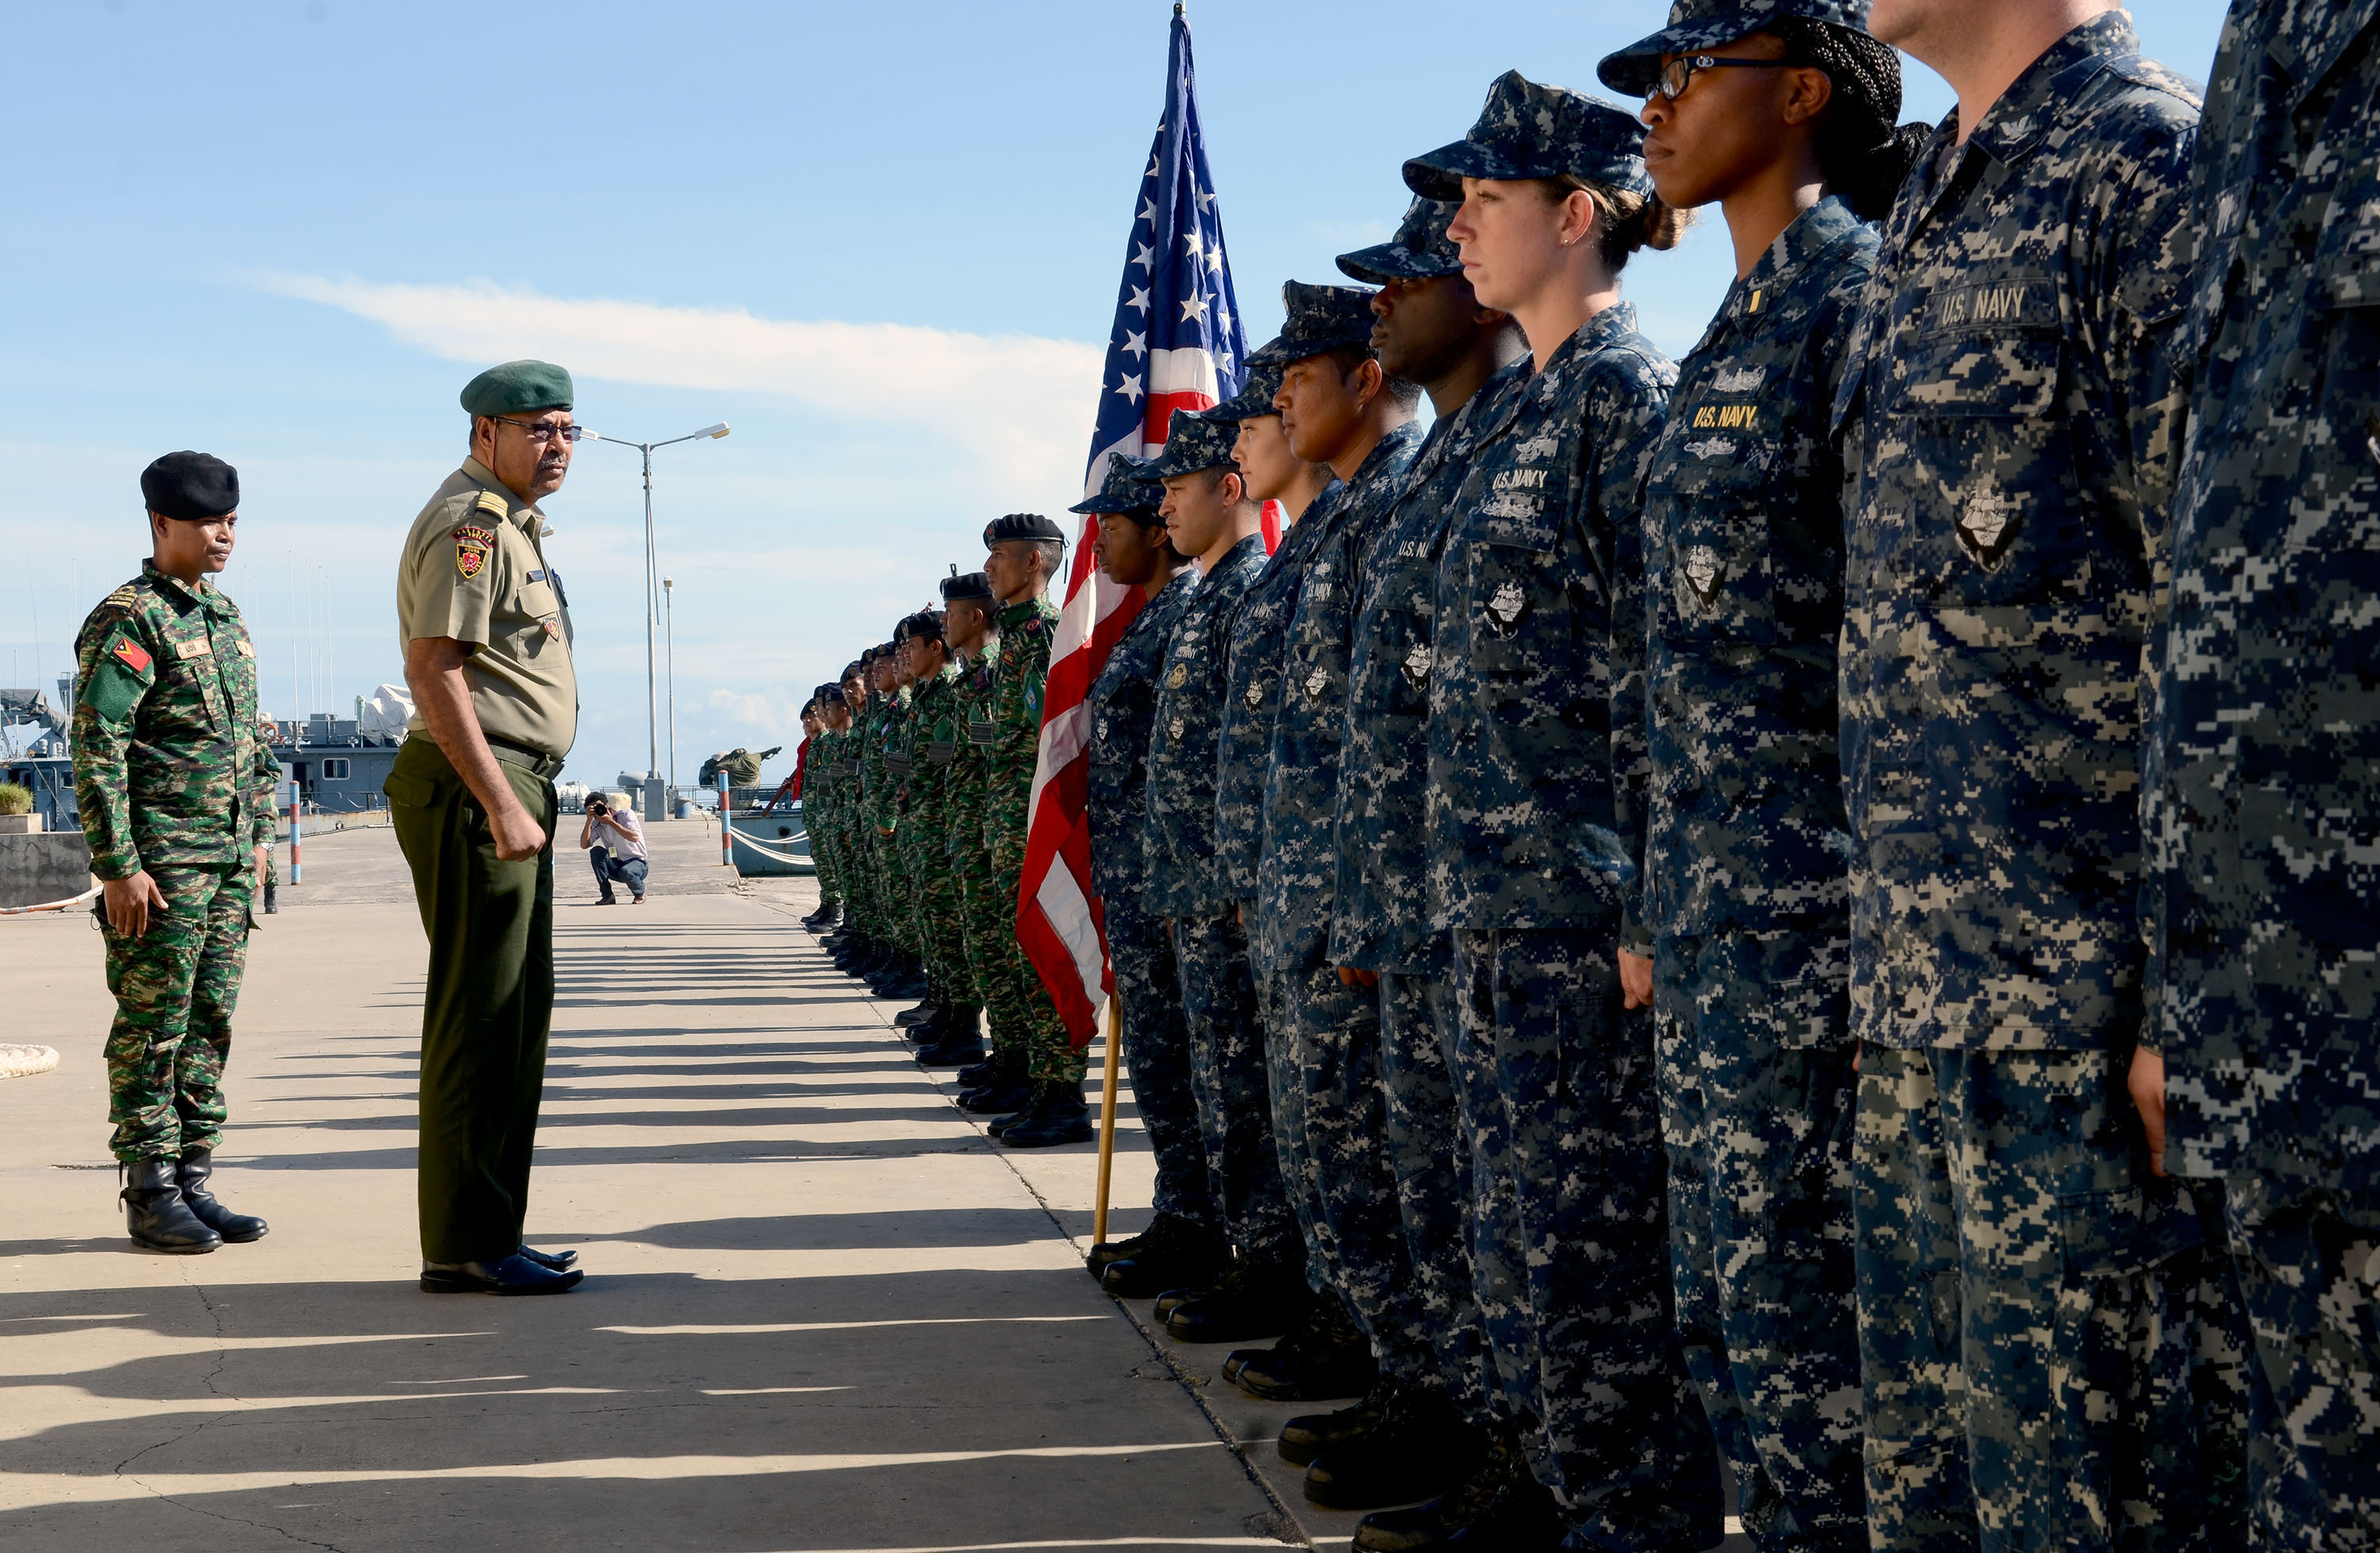 Chief of Staff of the Timor-Leste Defense Force Col. Falur Rate Laek, second from left, inspects U.S. Sailors assigned to the guided missile destroyer USS Kidd (DDG 100) and Timor-Leste Defense Force service members Feb. 24, 2014, during the opening ceremony of Cooperation Afloat Readiness and Training (CARAT) 2014 in Port Hera, East Timor. CARAT is a series of bilateral exercises held annually in Southeast Asia to strengthen relationships and enhance force readiness. (DoD photo by Mass Communication Specialist 1st Class Jay C. Pugh, U.S. Navy/Released)